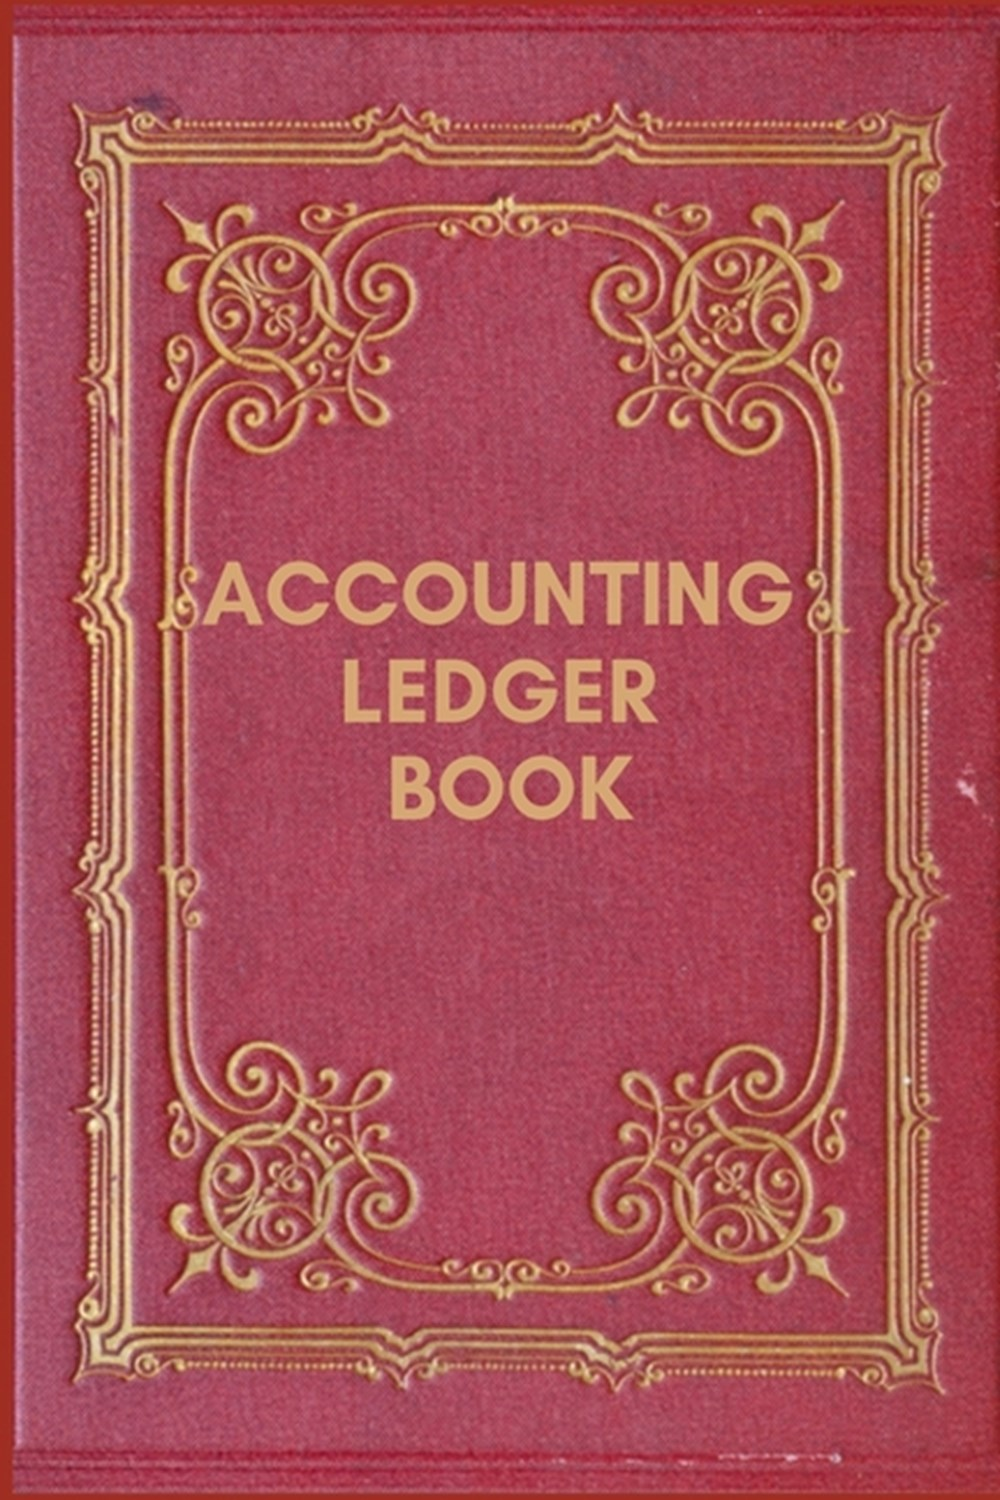 Accounting Ledger Book Simple Balance sheet or Cash Book Accounts Bookkeeping Journal for Small and